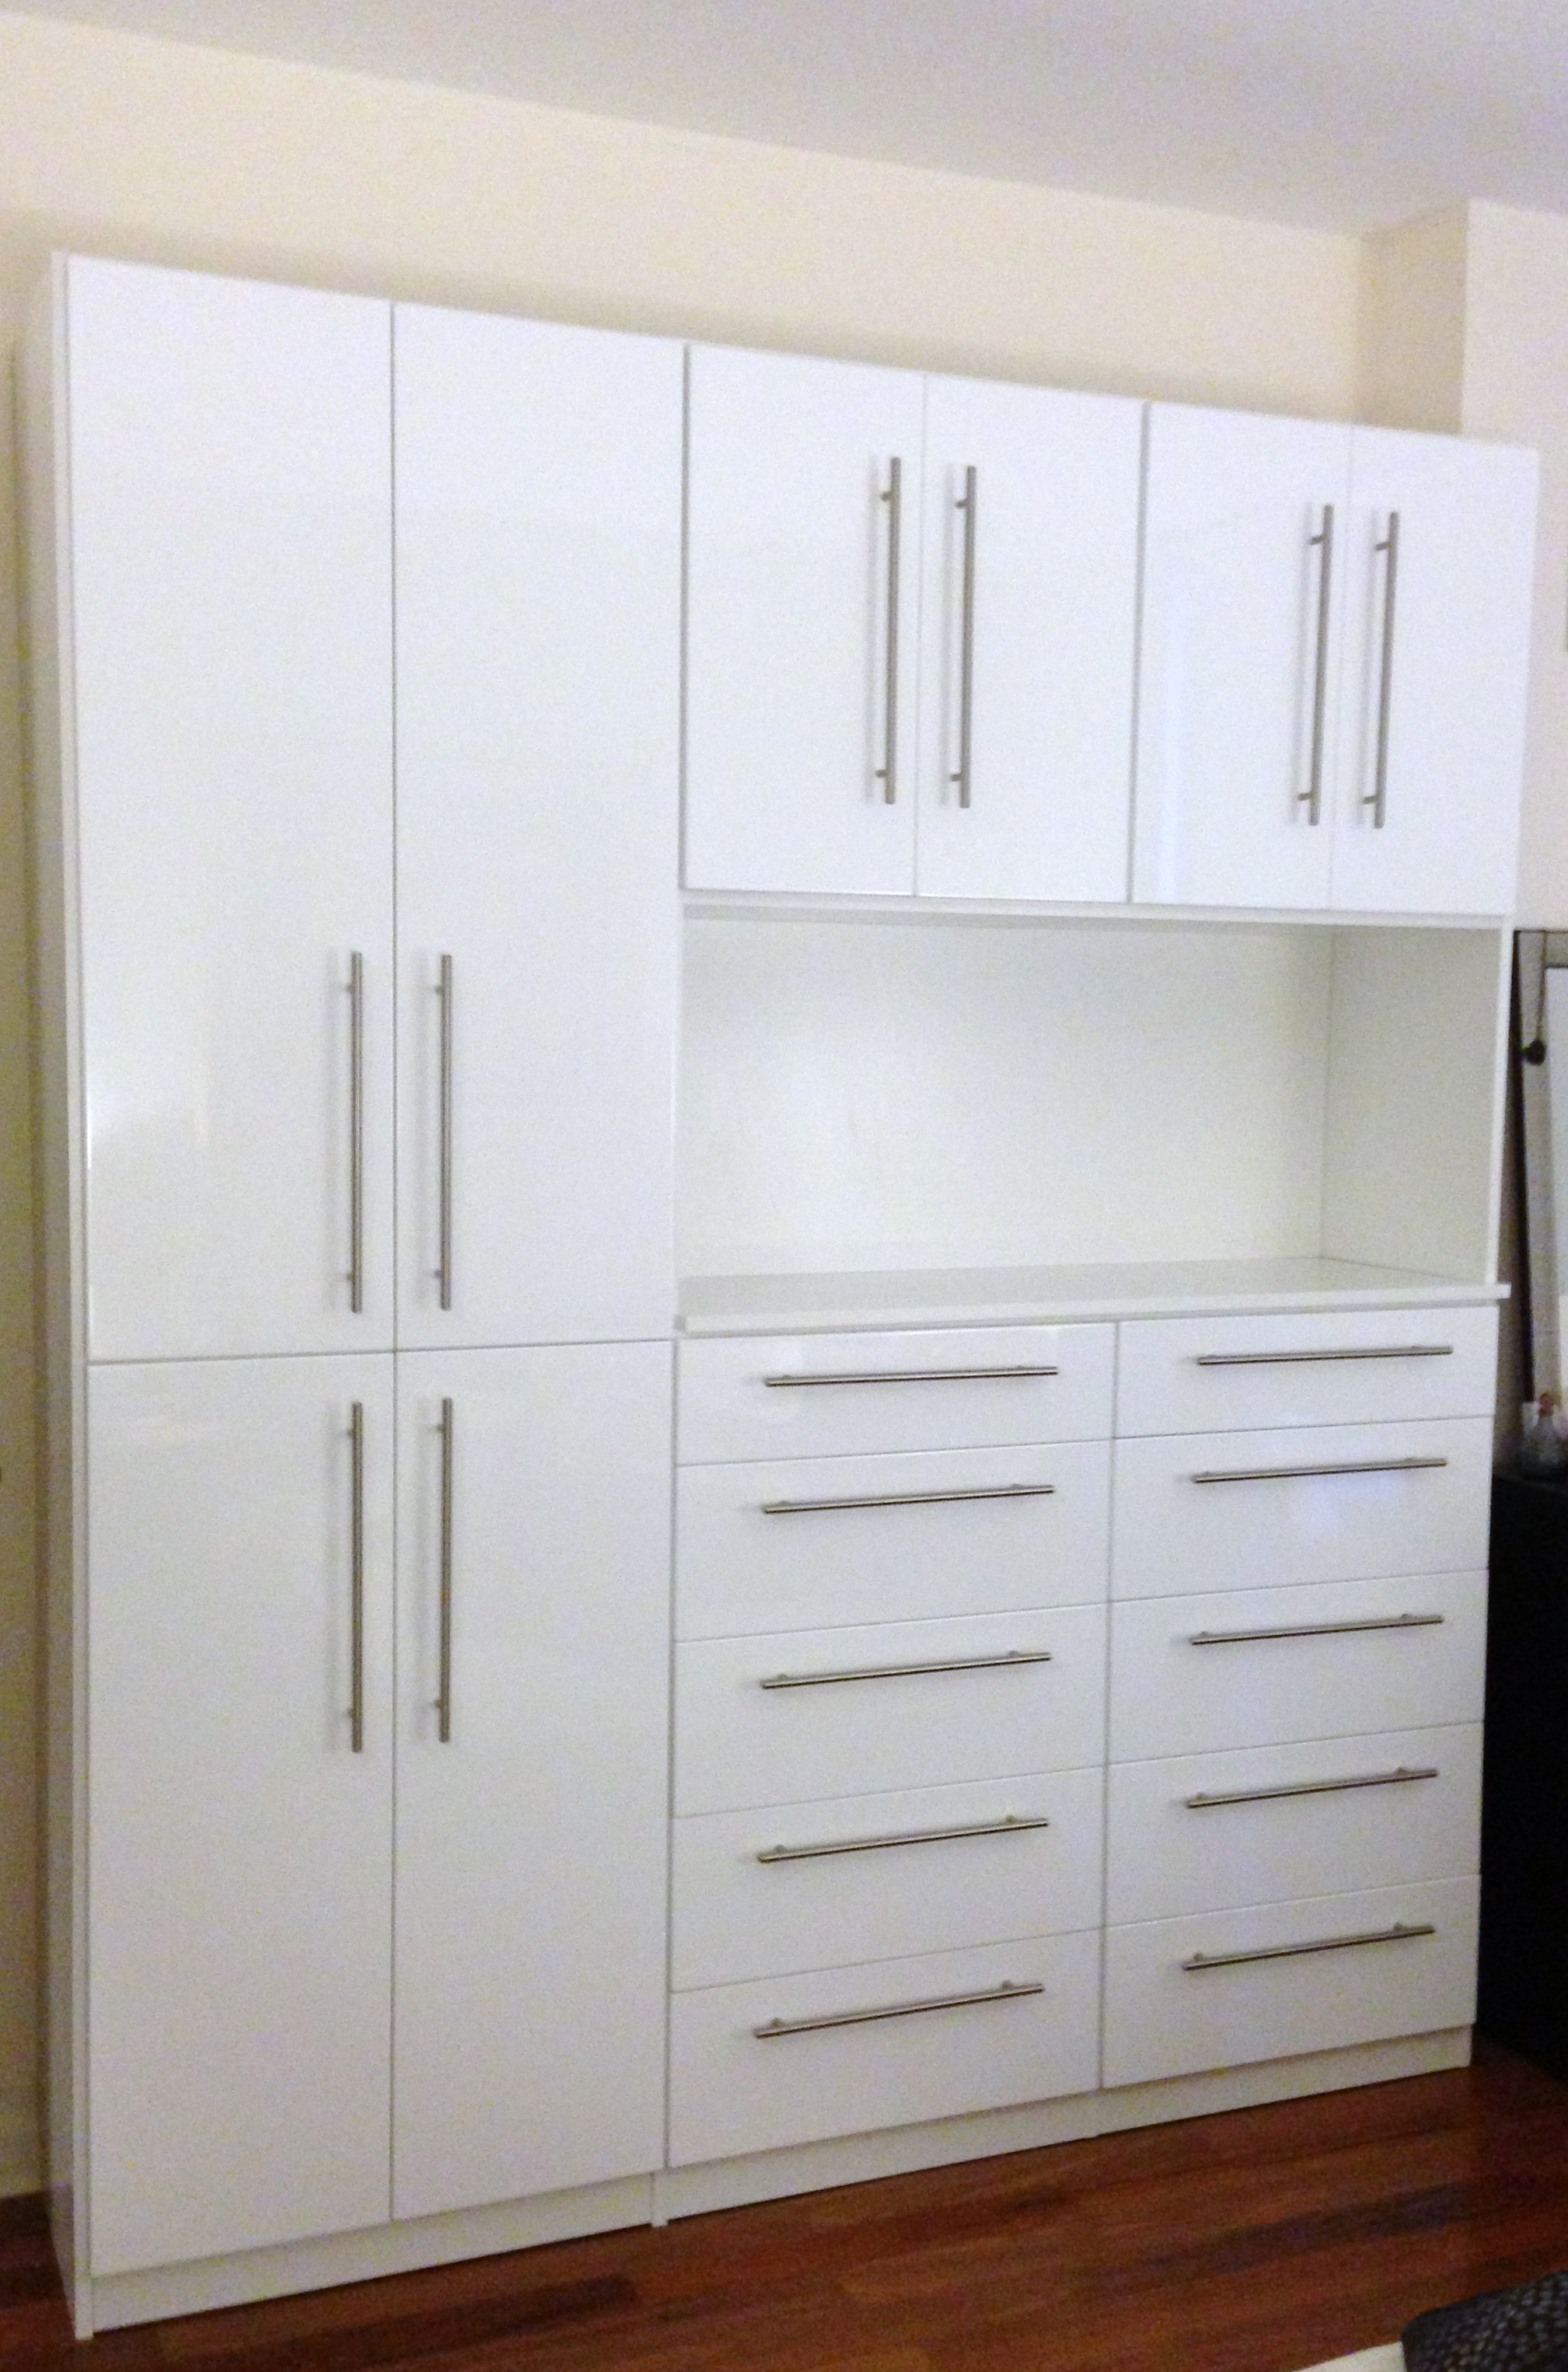 Wall Units - Symmetry Closets